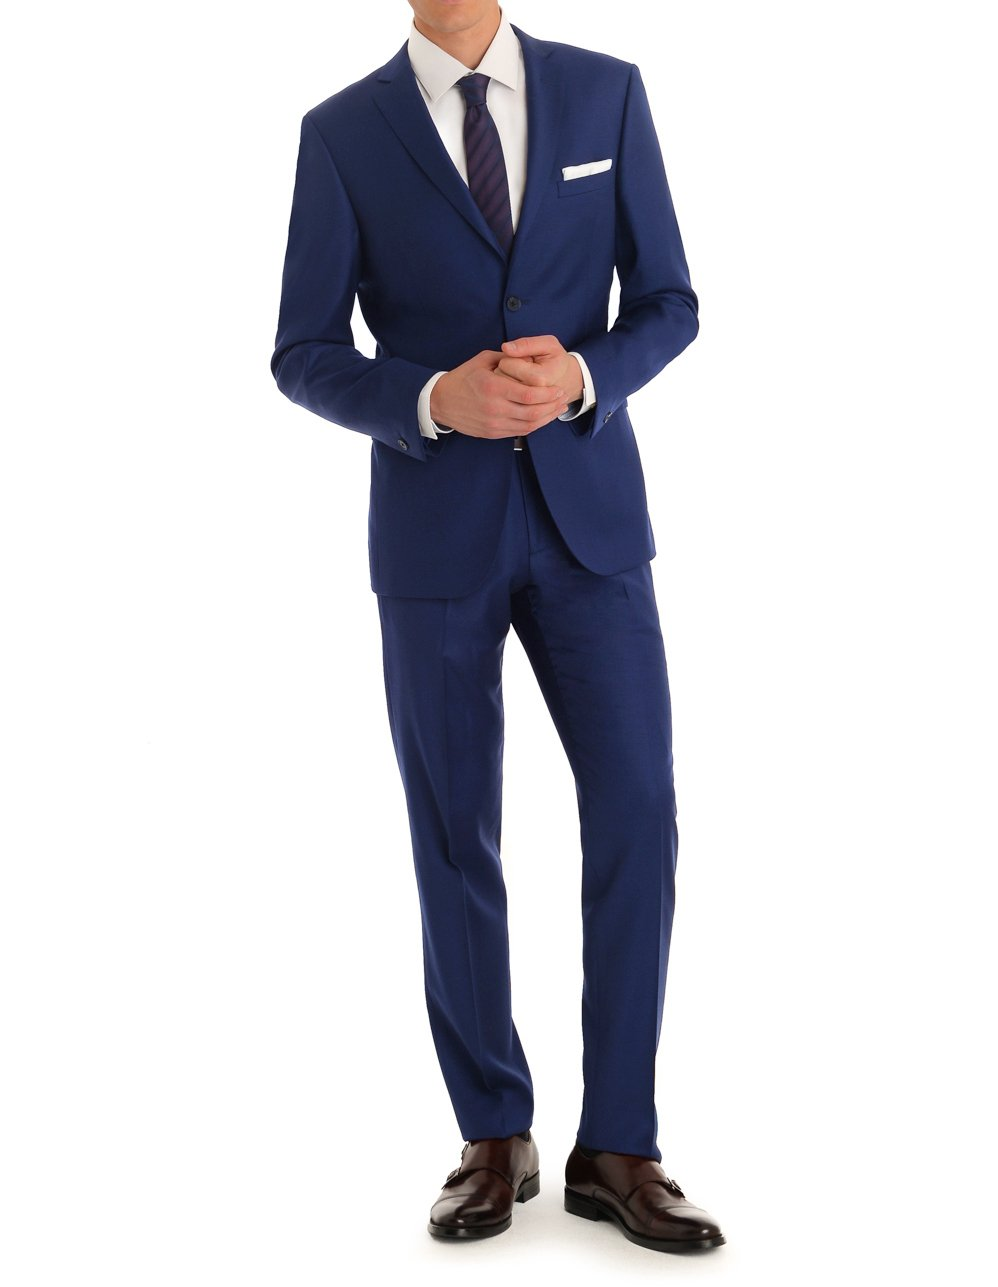 MDRN Uomo Men's Slim Fit 2 Piece Suit, Indigo, 38R/32W